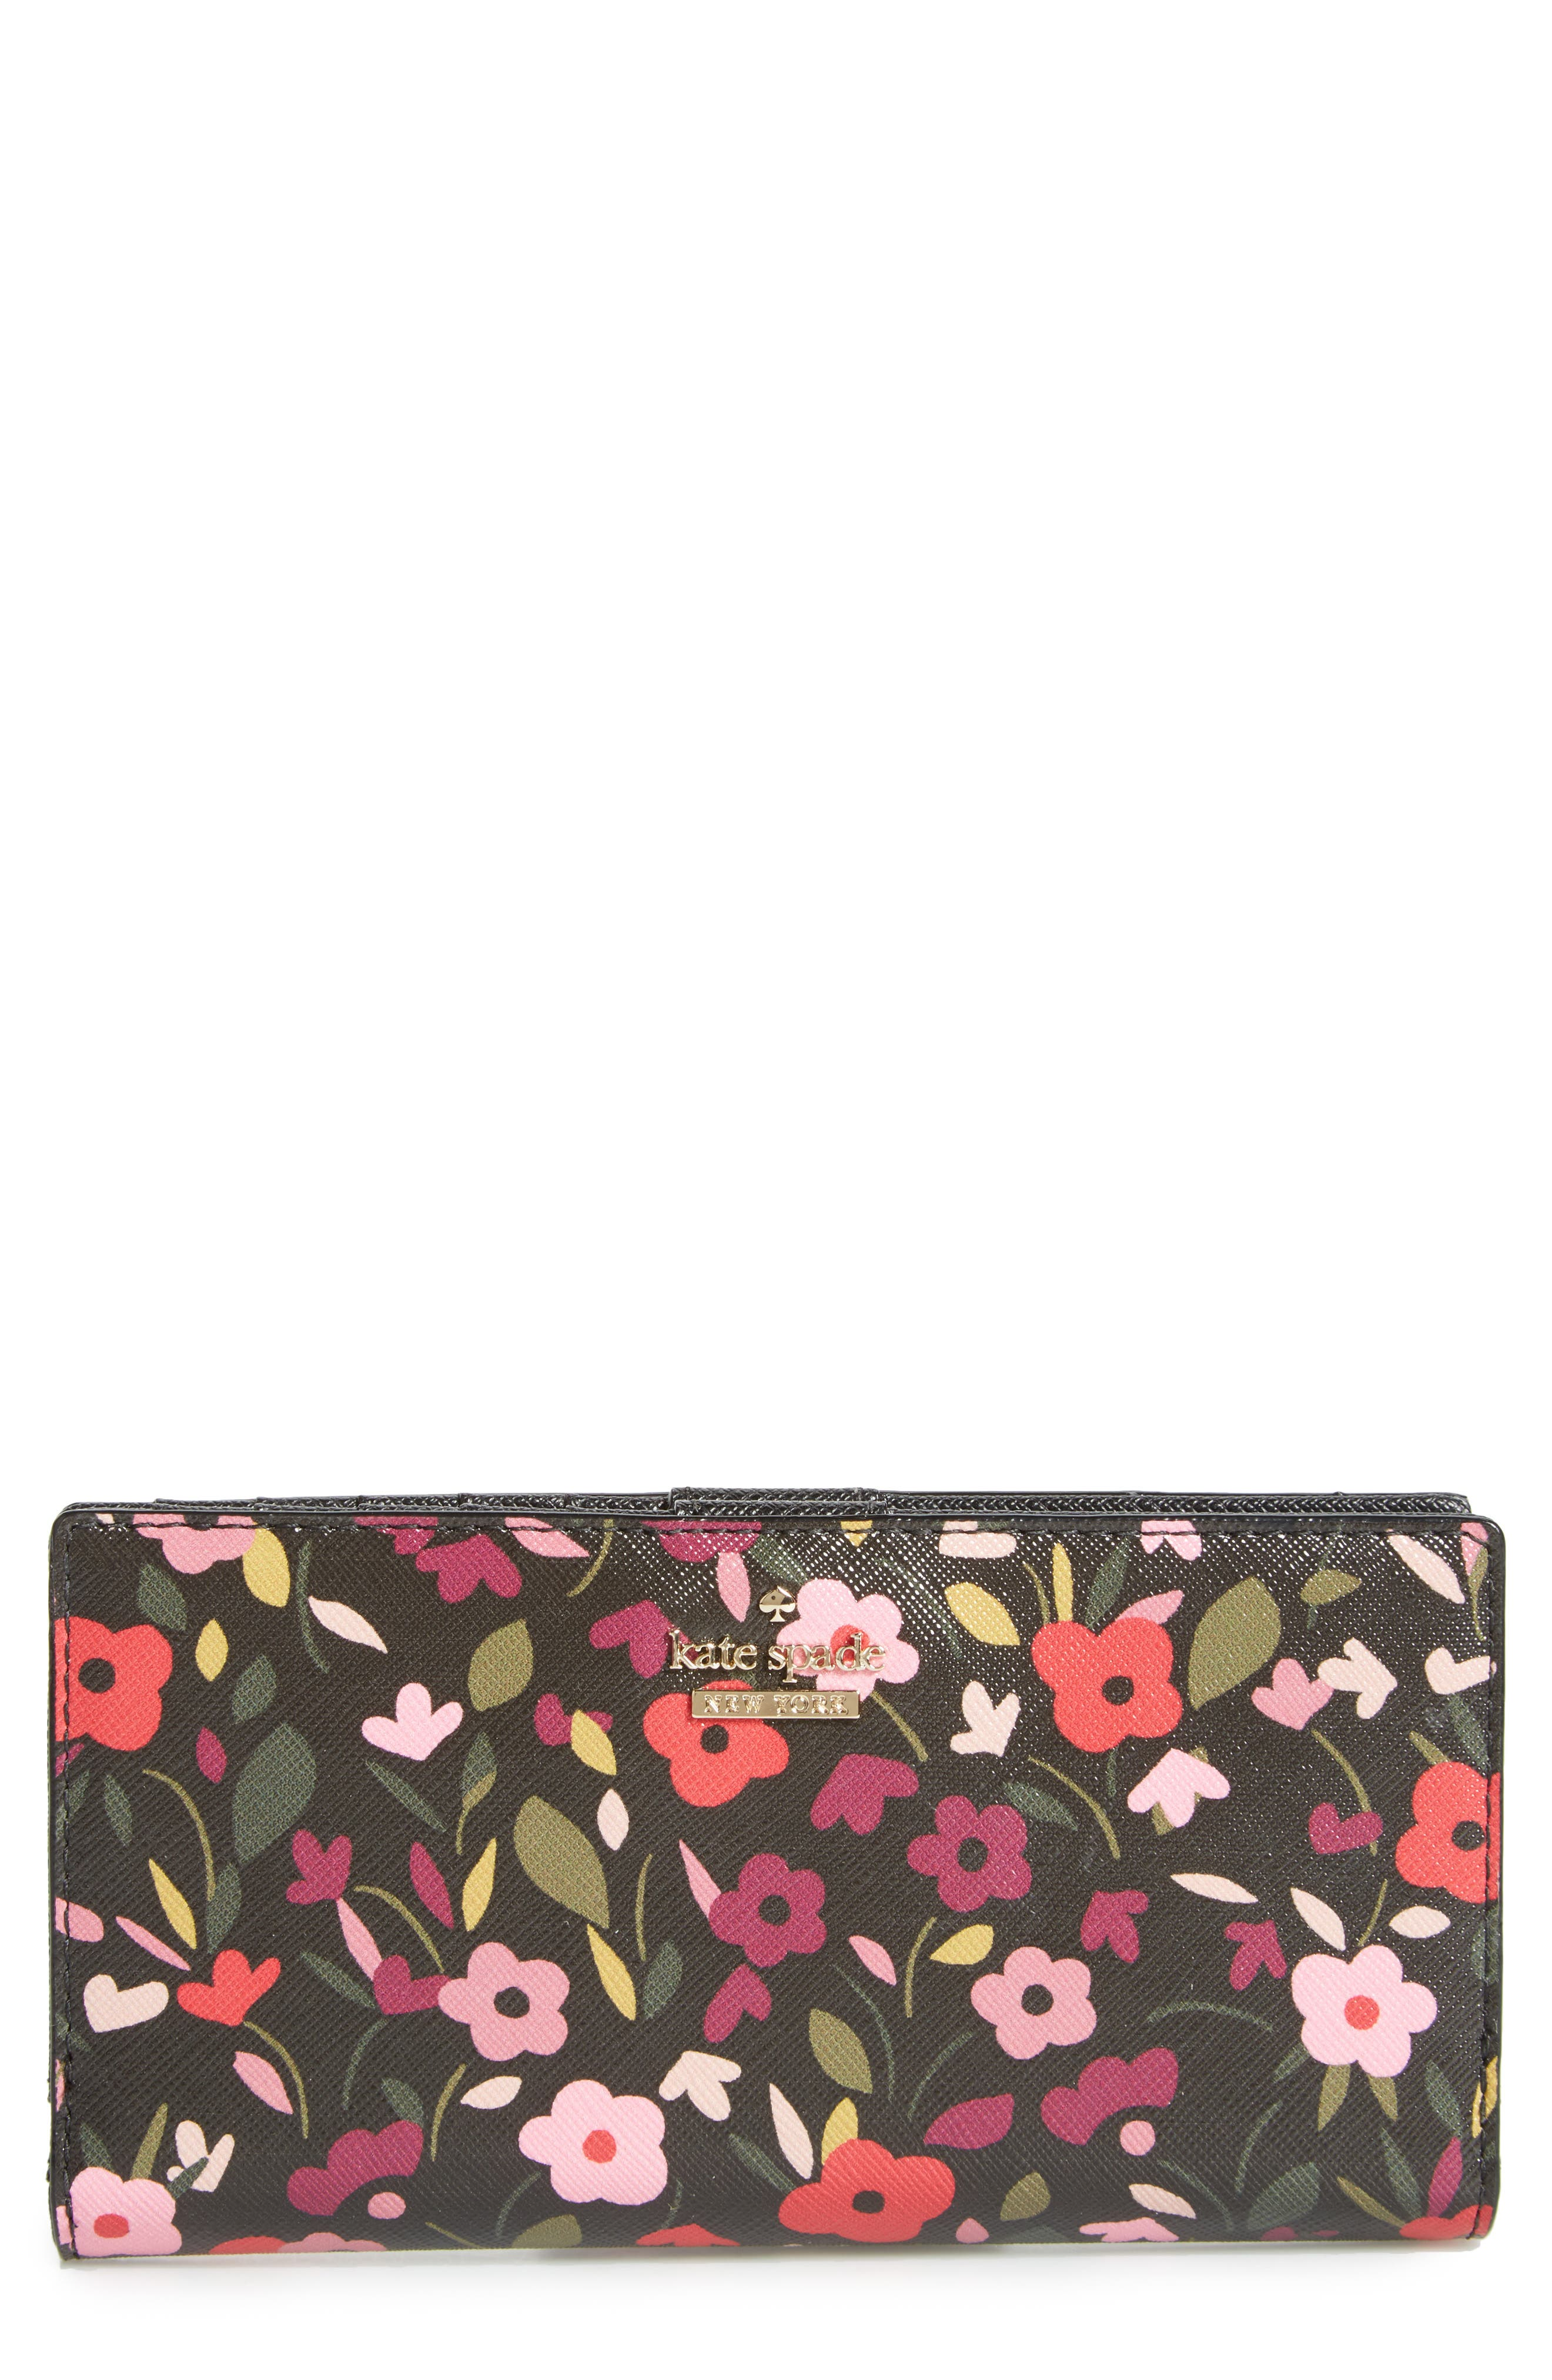 KATE SPADE NEW YORK cameron street - stacy boho floral wallet